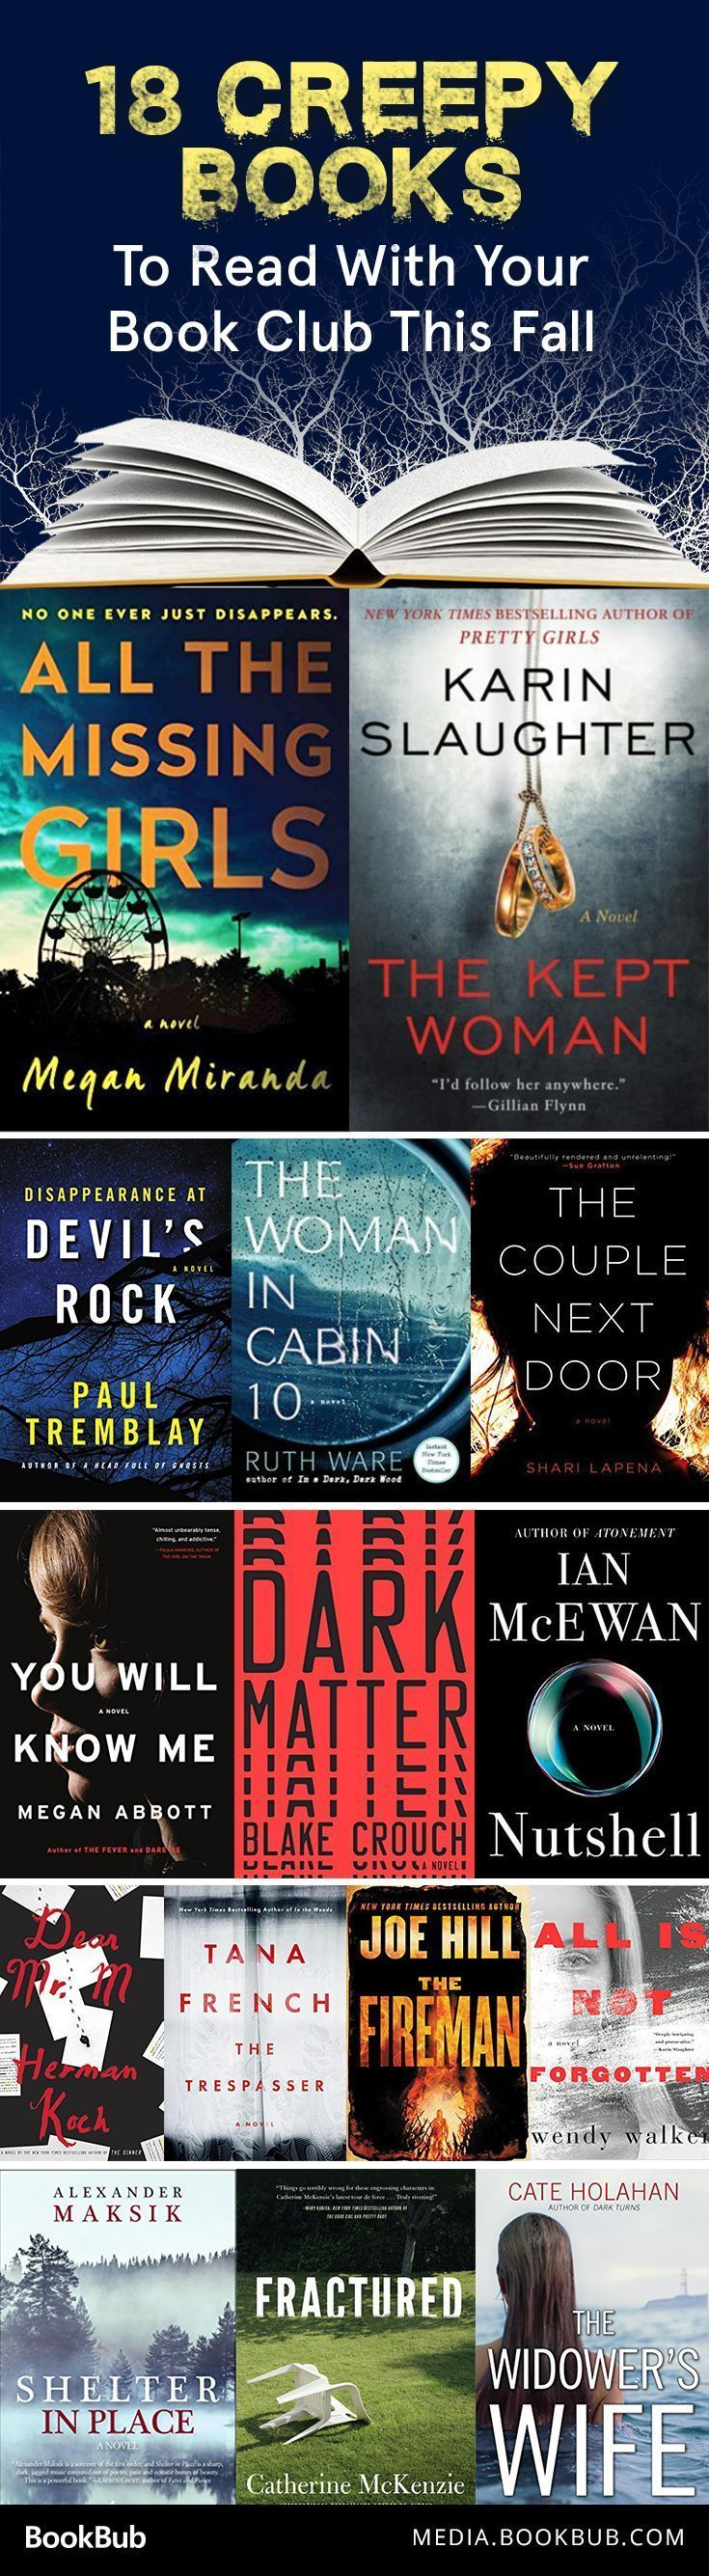 15 Creepy Books To Read For Halloween If You Love Thrillers And Mysteries,  These